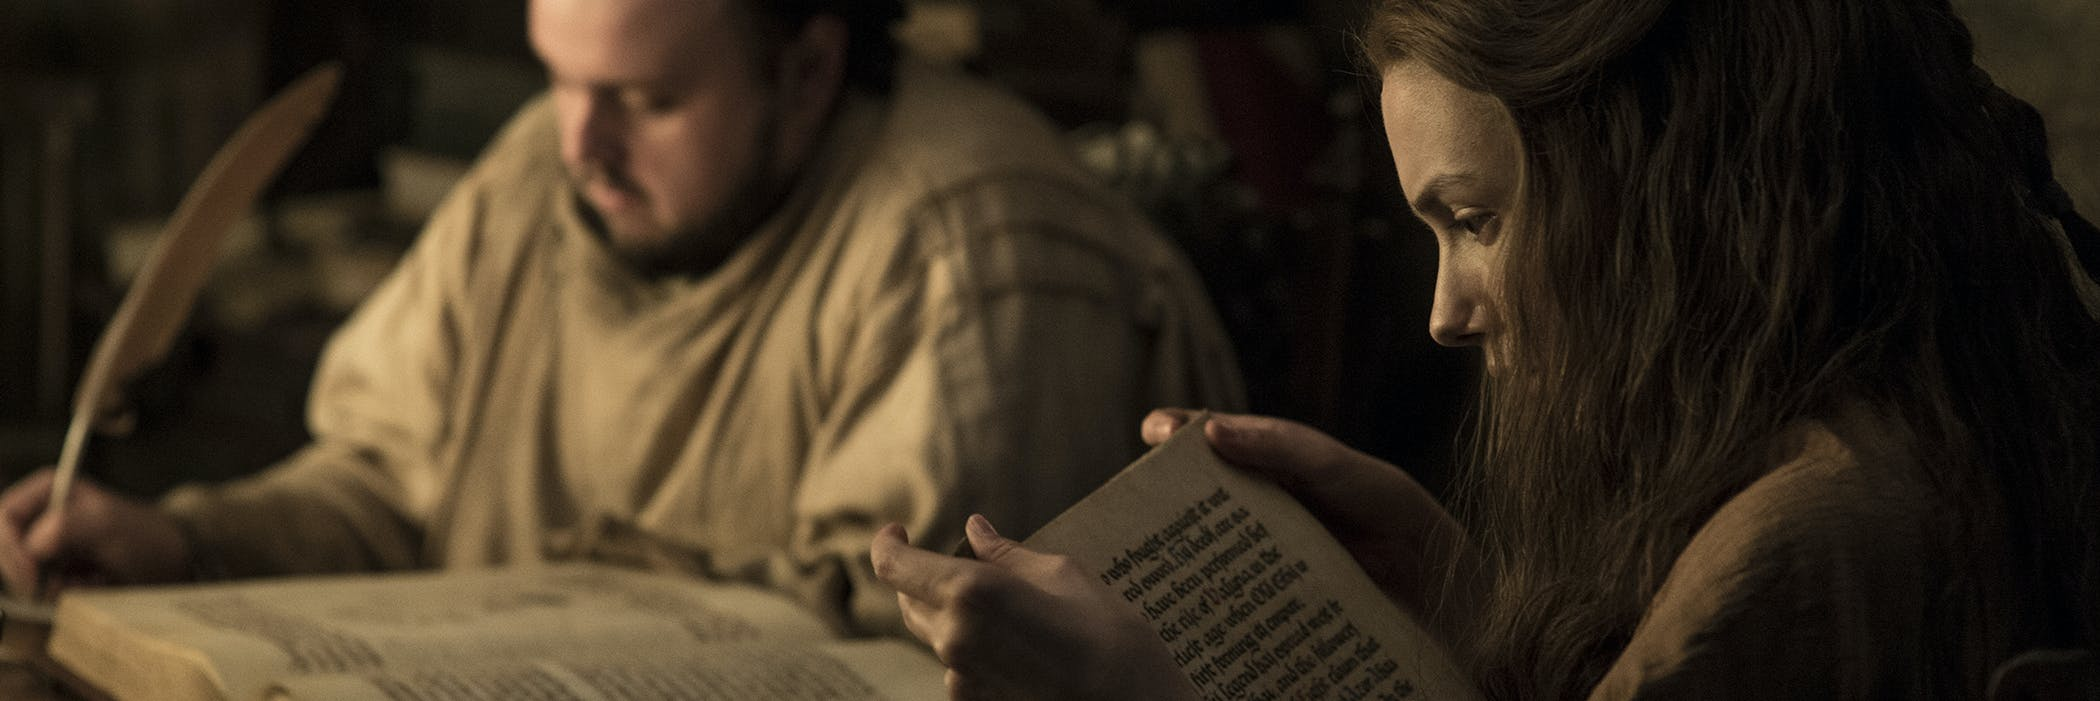 Sam, Gilly, and Azor Ahai in 'Game of Thrones' Season 7